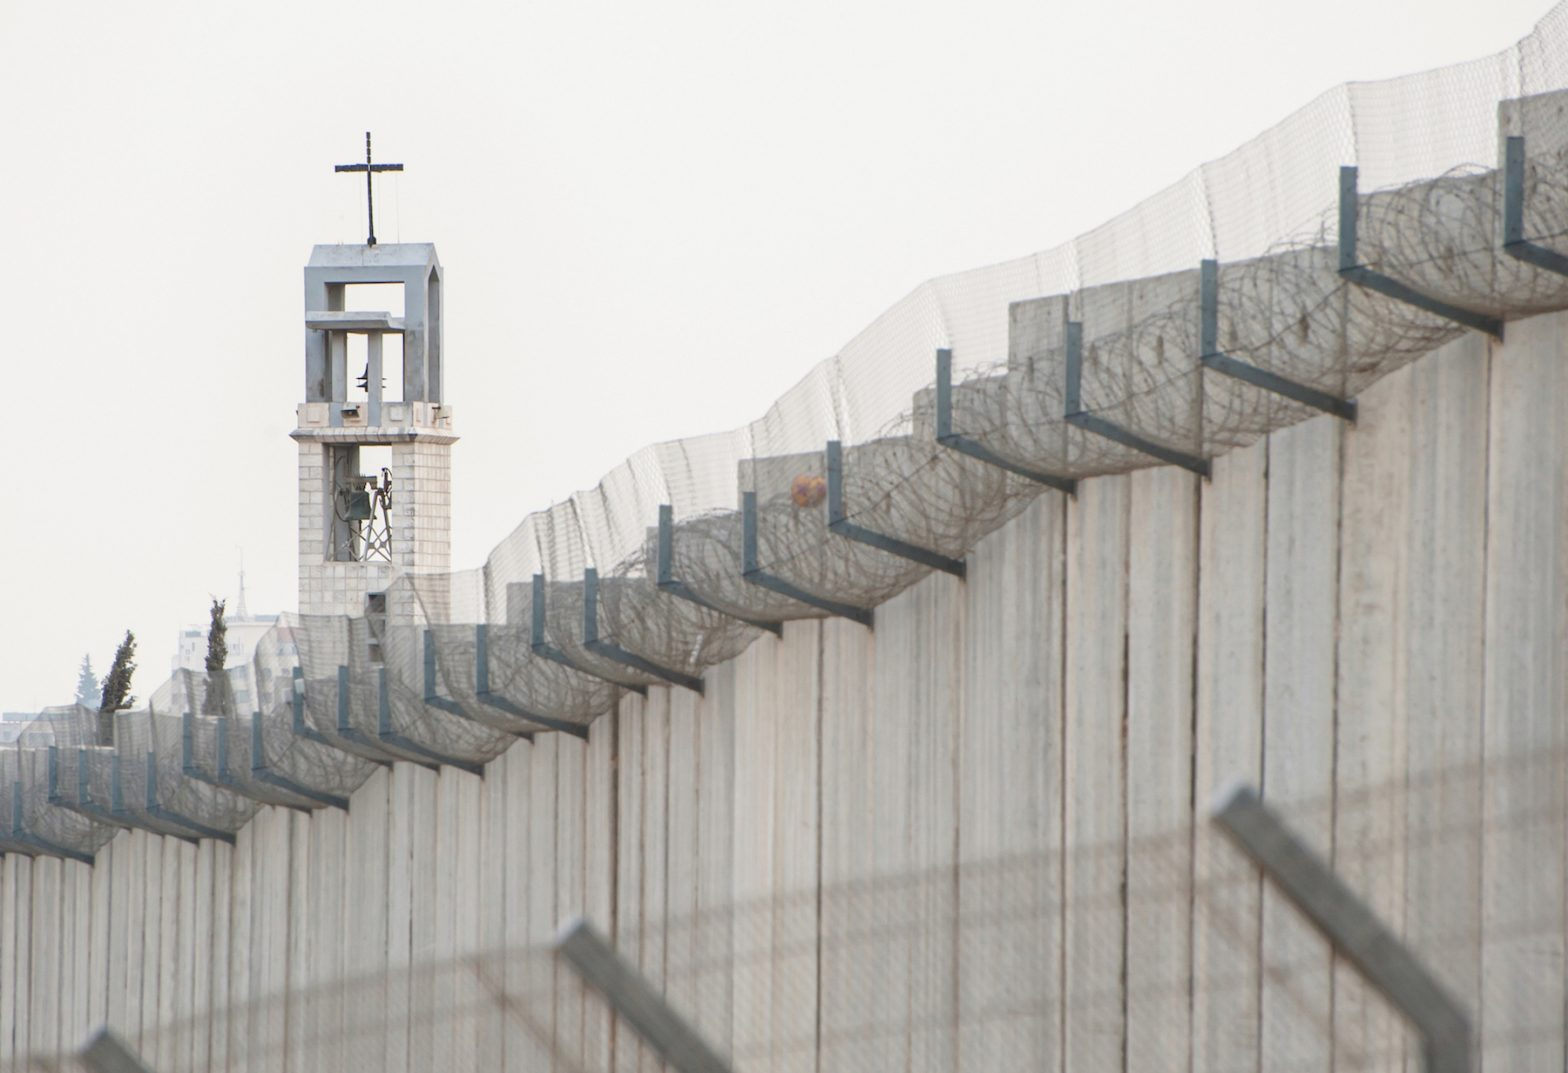 Image: The steeple of a Franciscan convent in the Aida refugee camp, near the Israeli separation wall in the West Bank. Photo: Ryan Rodrick Beiler